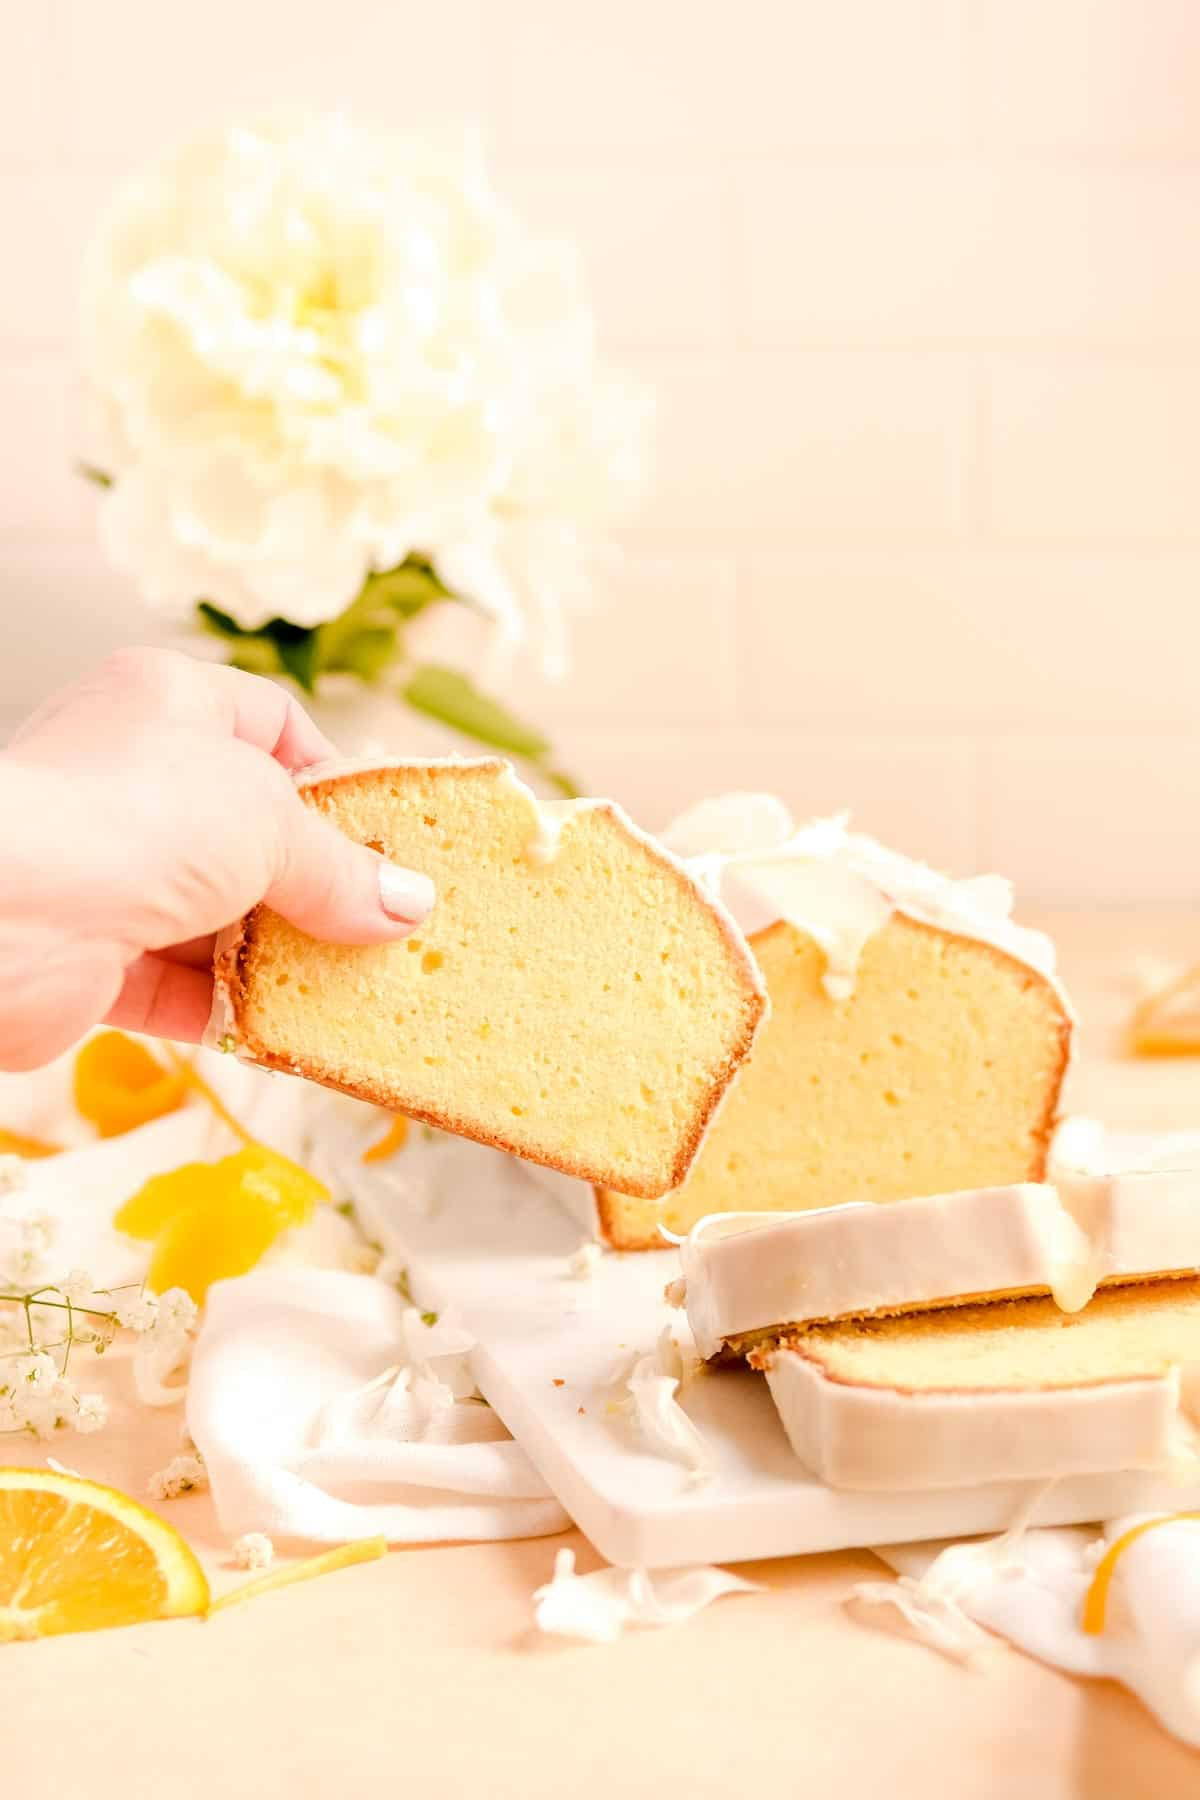 someone grabbing a slice of glazed citrus pound cake from a a table with flowers and orange slices on it.